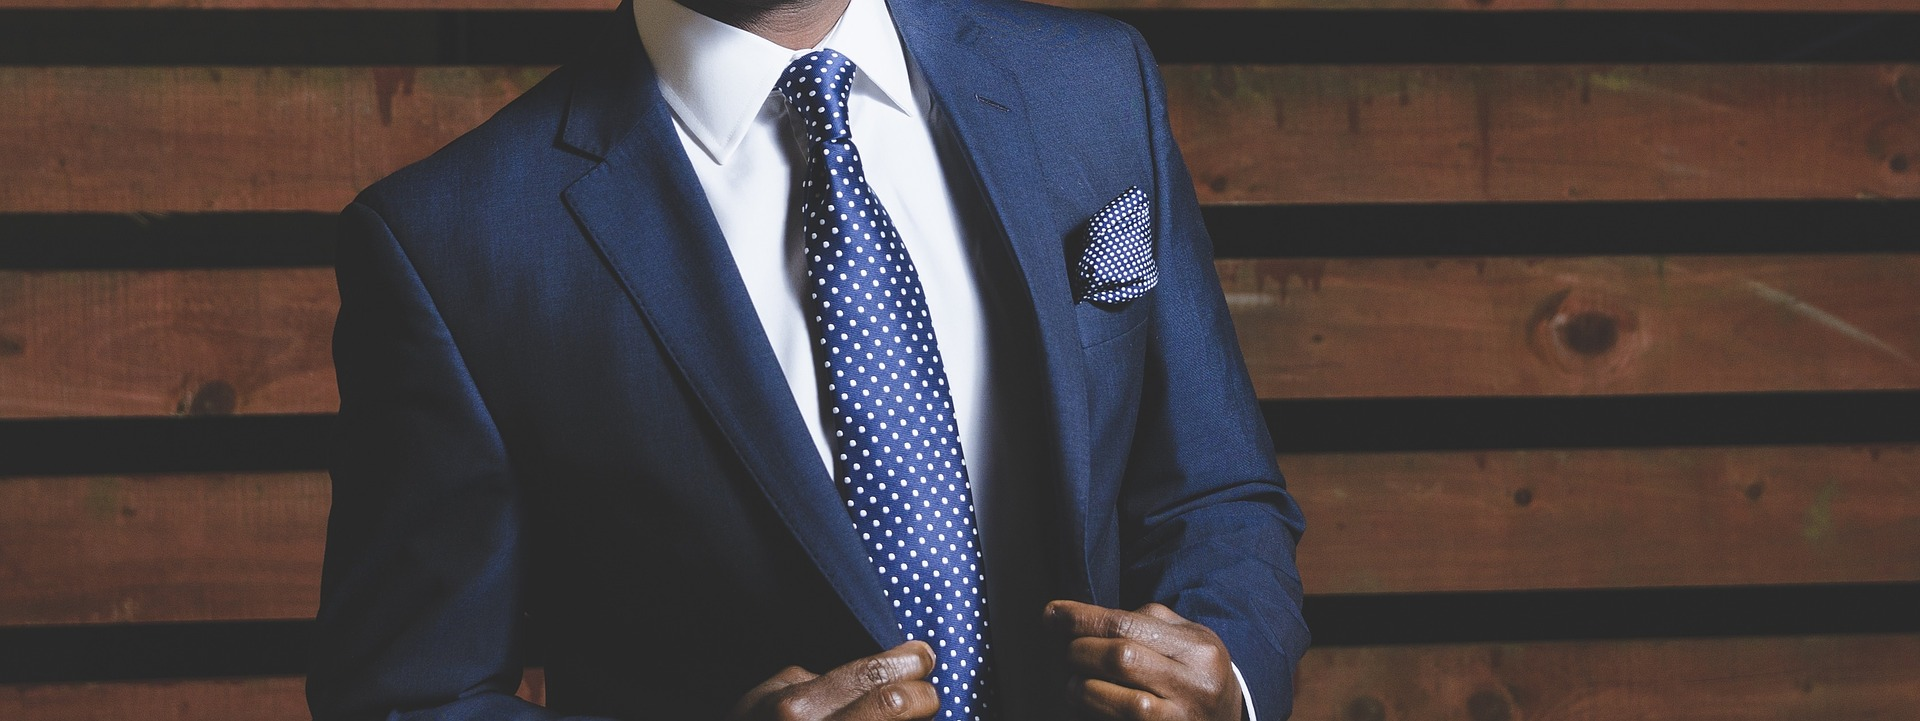 Featured Image for about page. Man in suit.